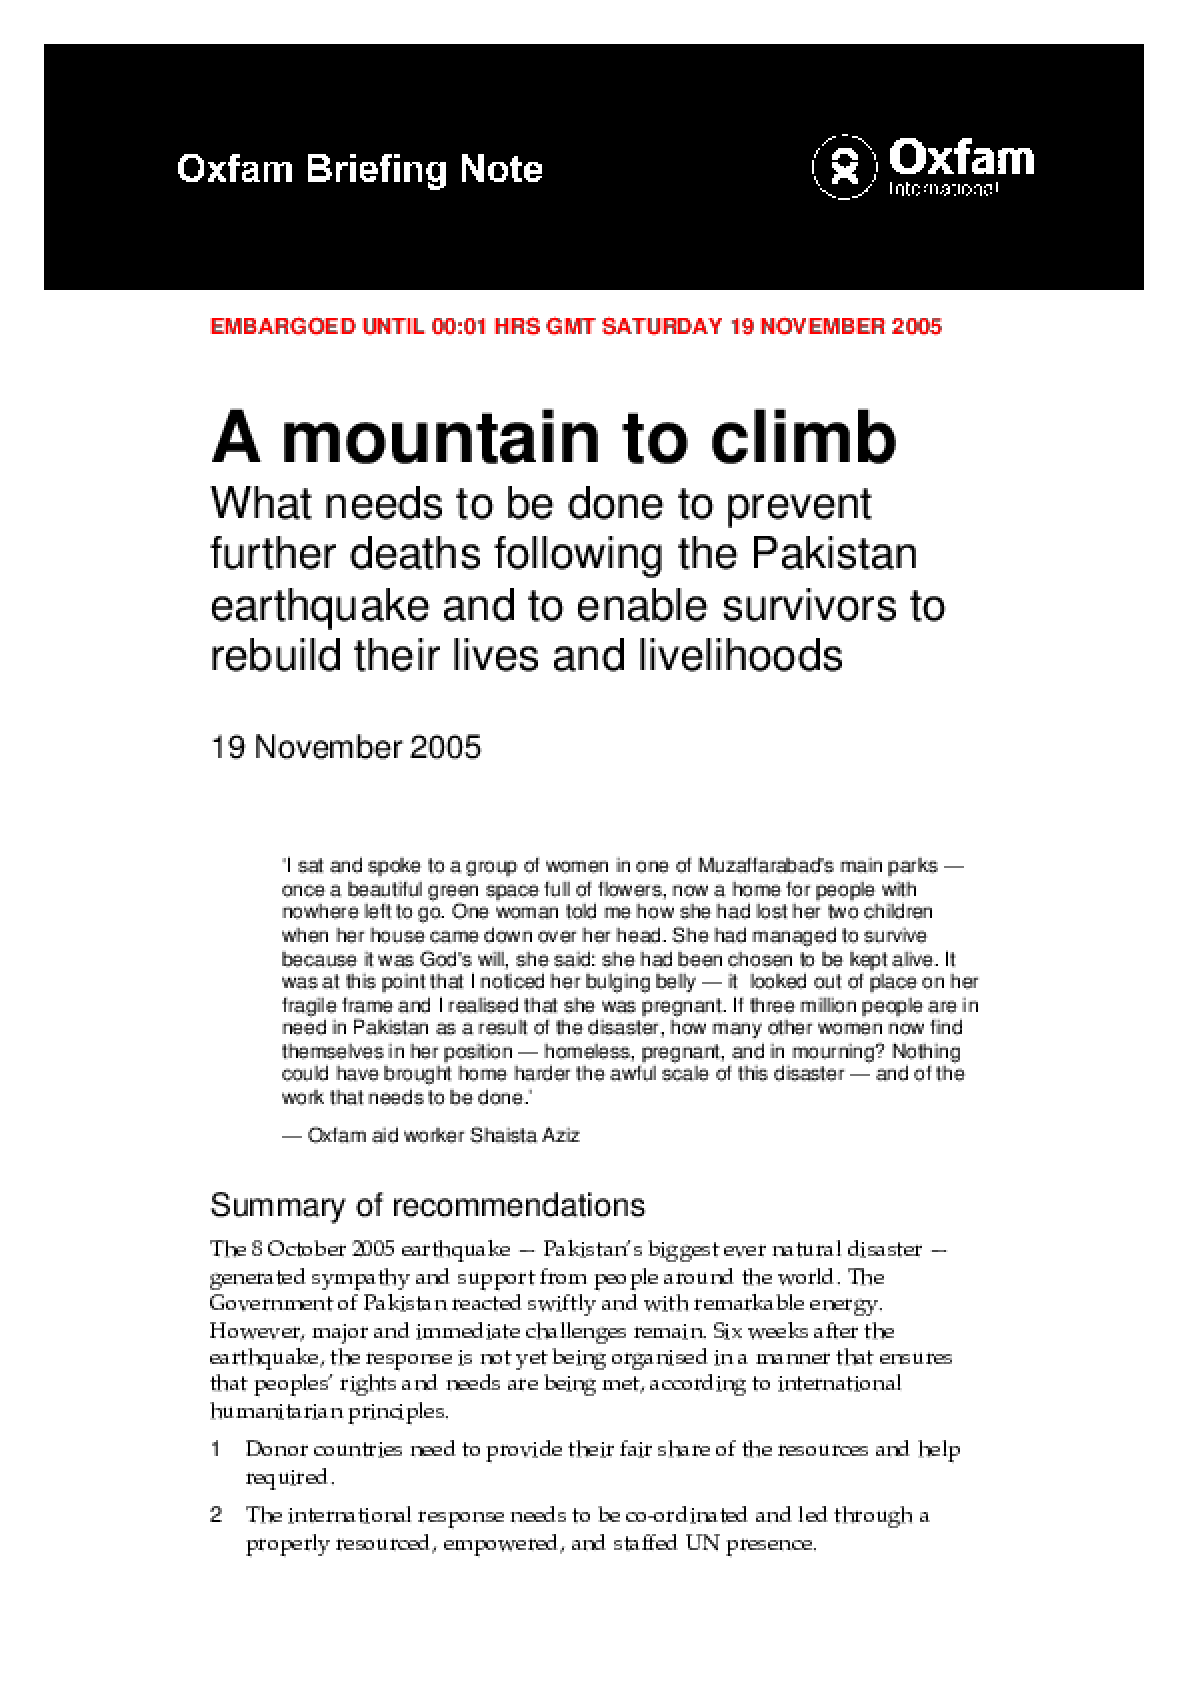 A Mountain to Climb: What needs to be done to prevent further deaths following the Pakistan earthquake and to enable survivors to rebuild their lives and livelihoods